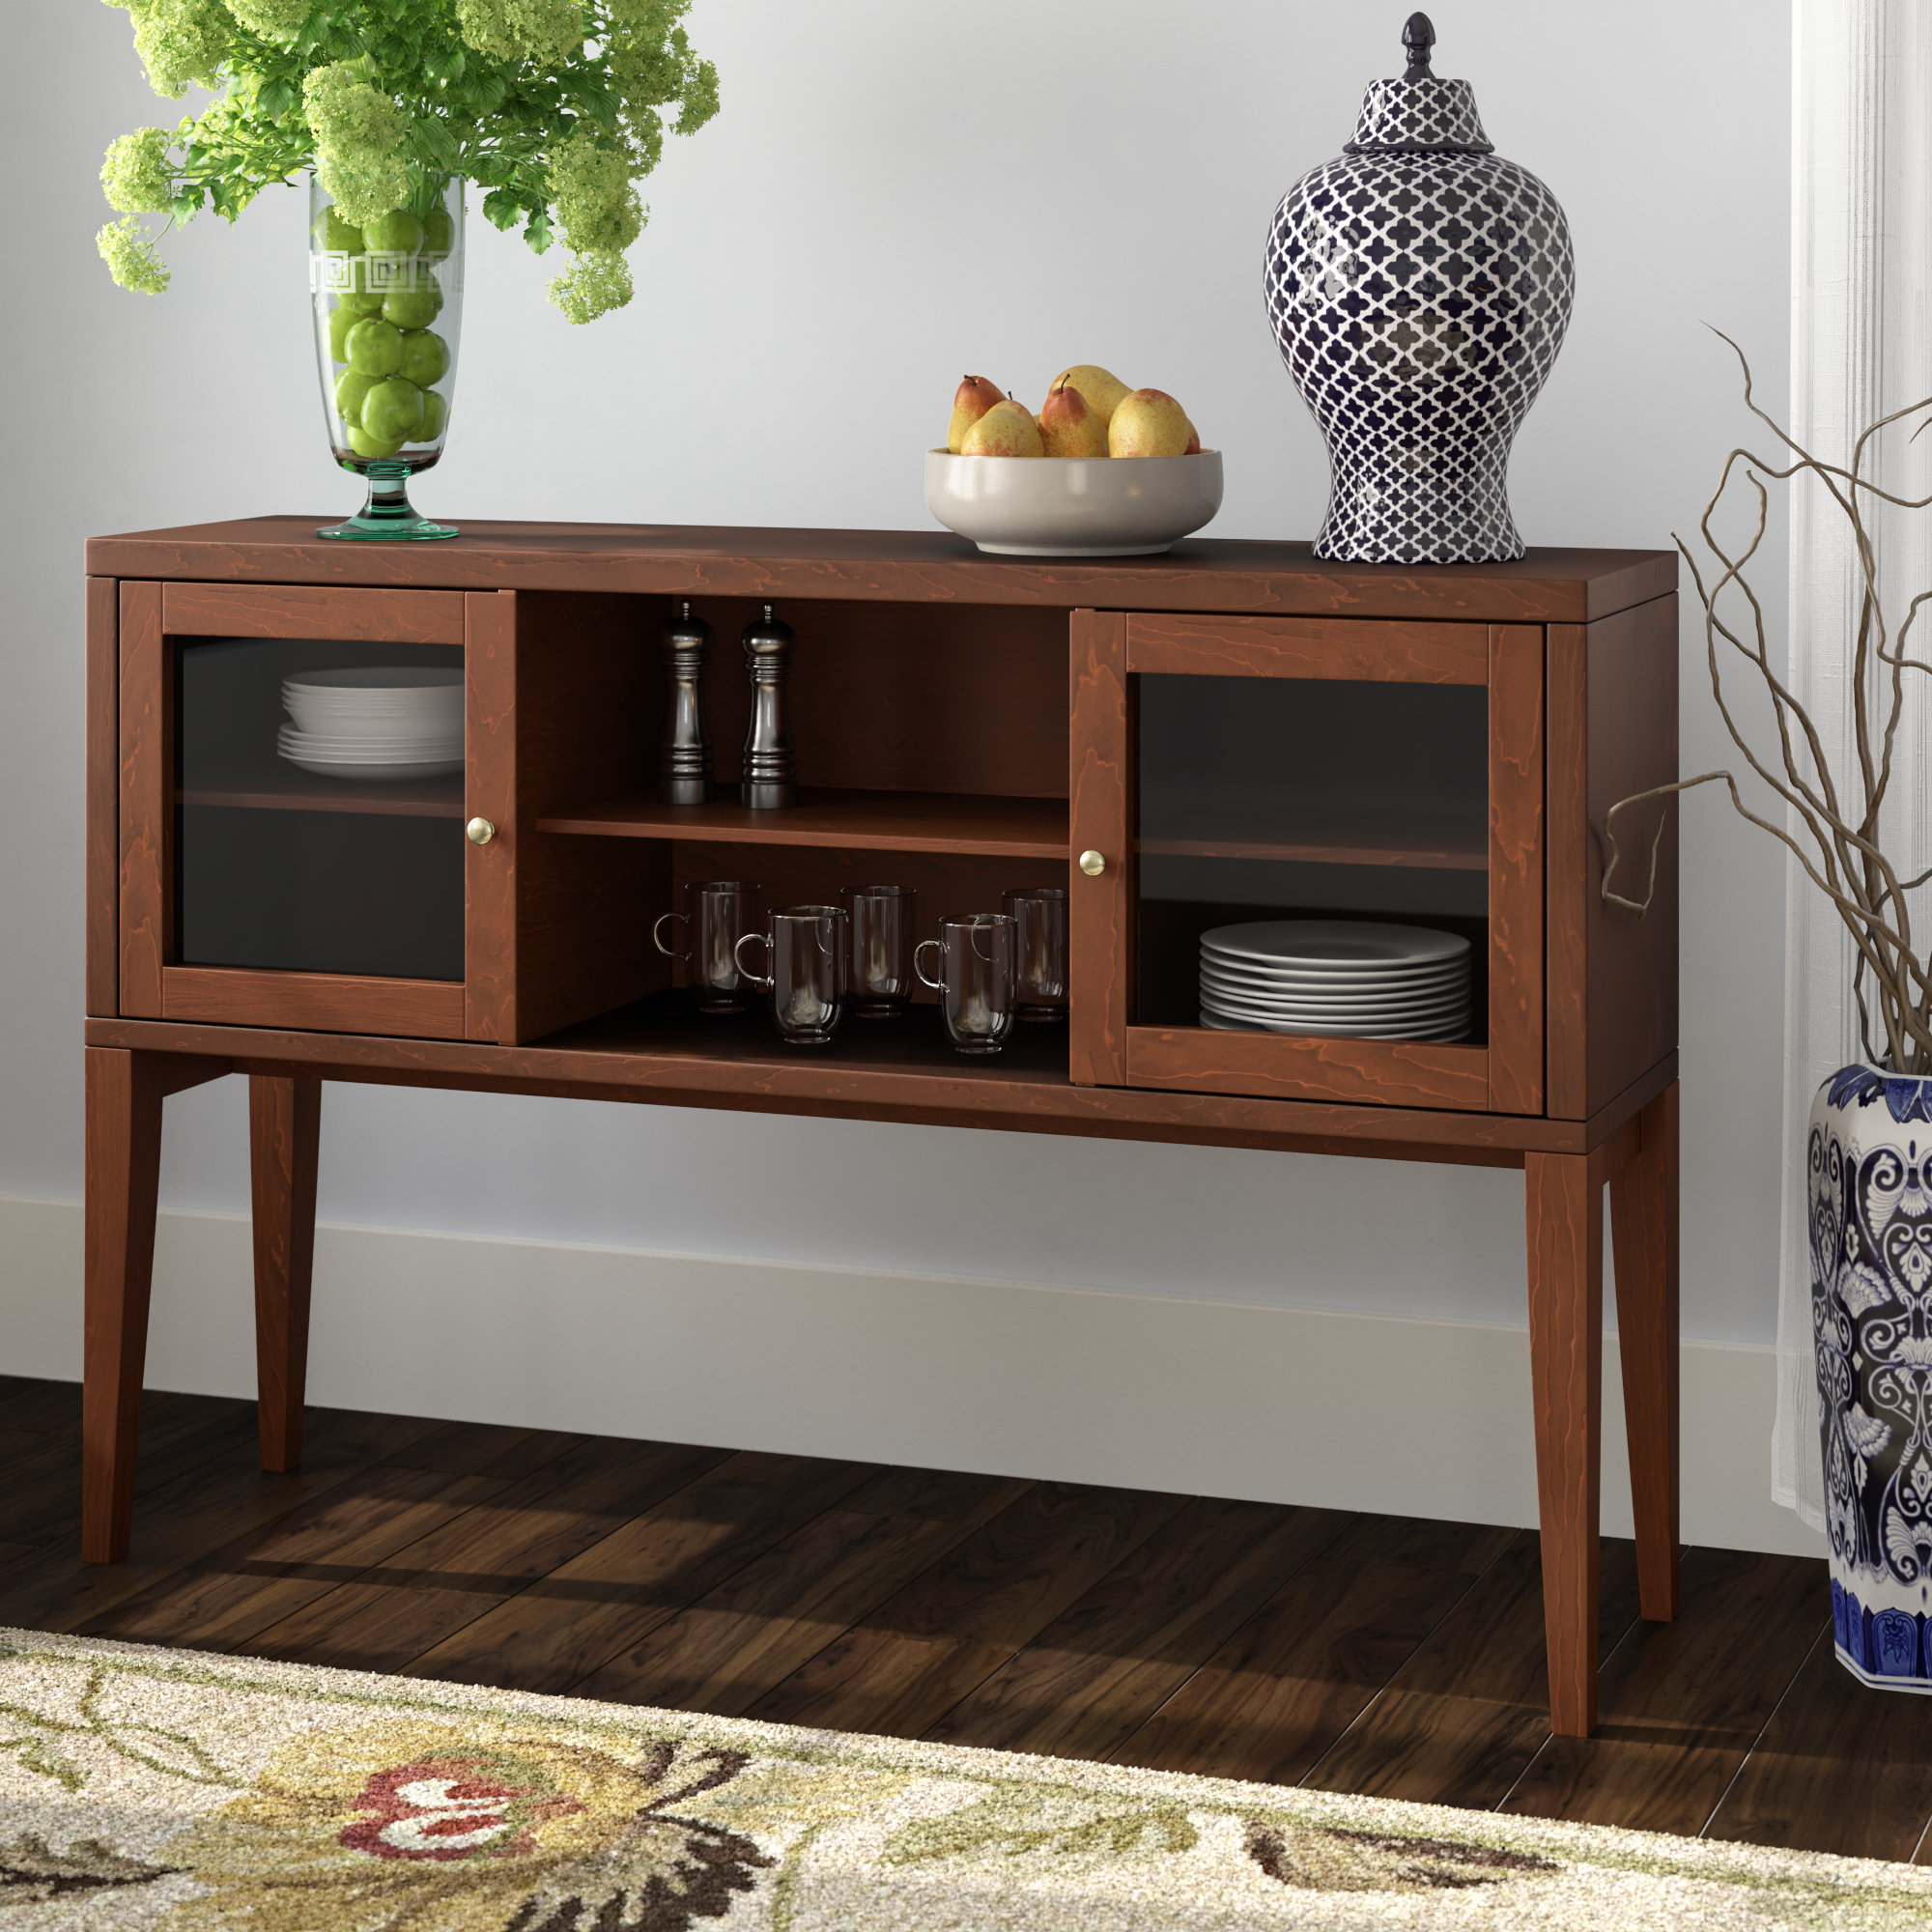 Allmodern Within Bale Rustic Grey Sideboards (View 14 of 20)